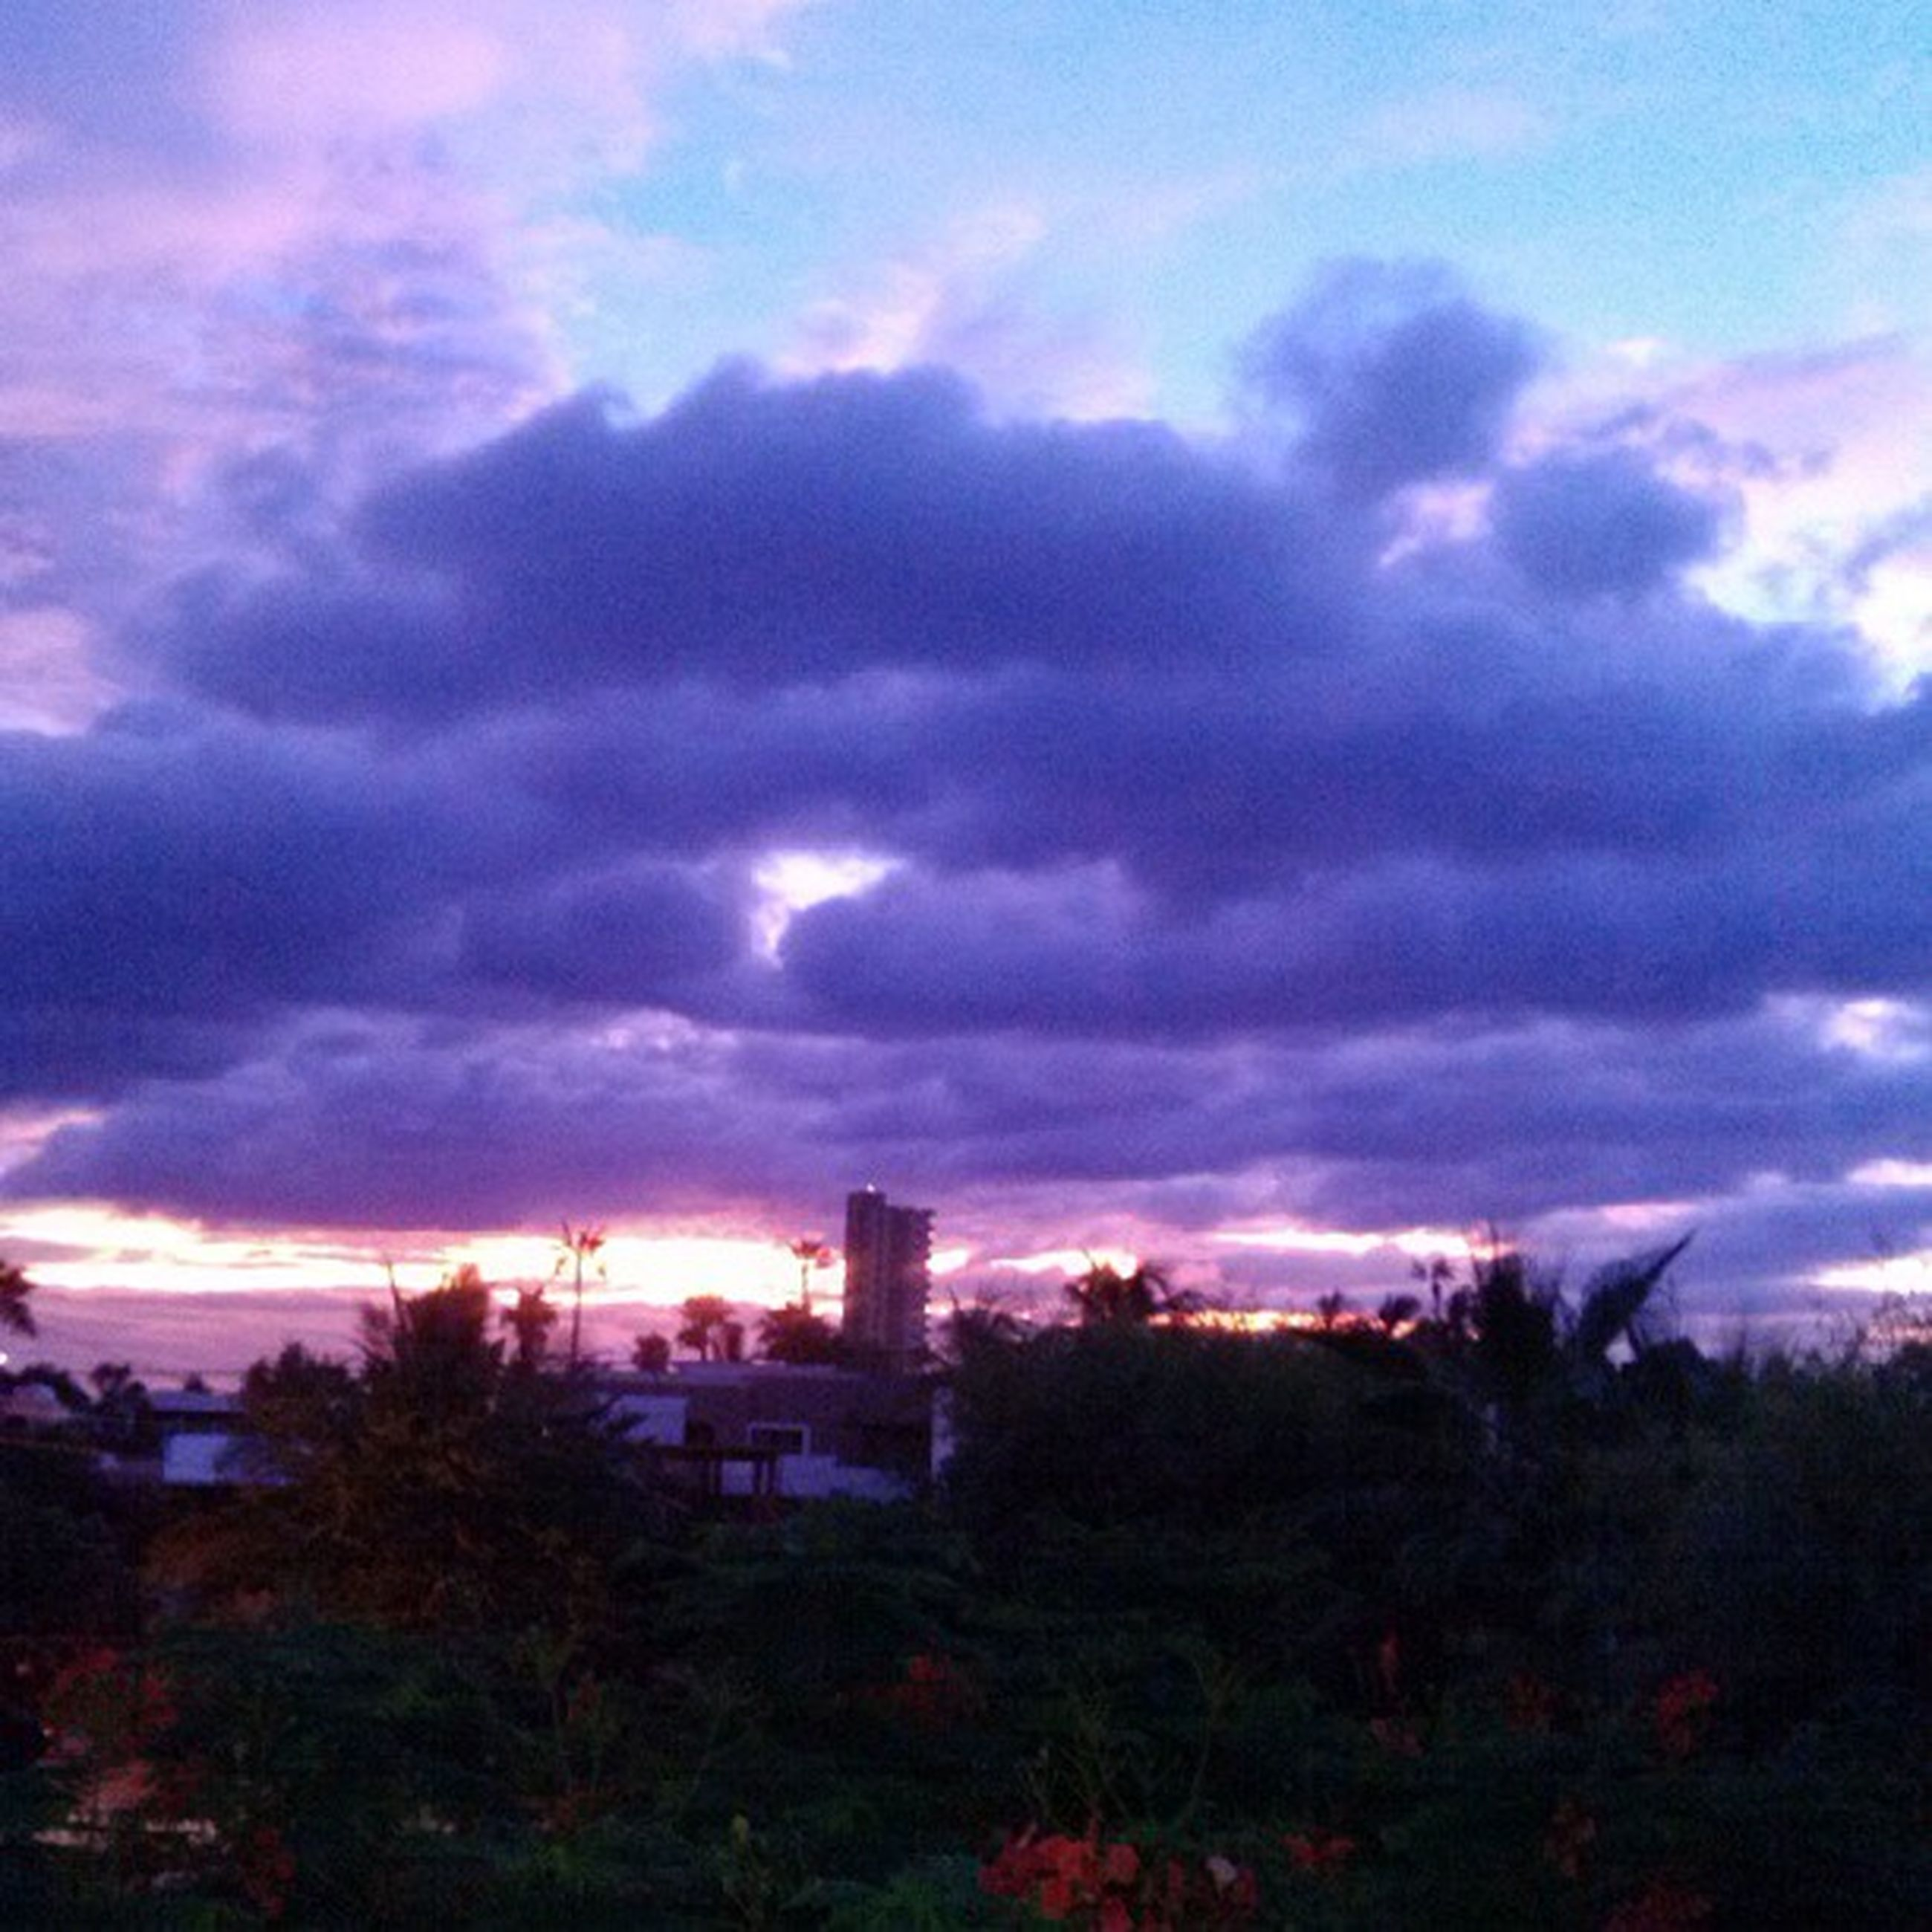 sky, cloud - sky, building exterior, architecture, built structure, sunset, tree, cloudy, beauty in nature, house, nature, cloud, growth, dramatic sky, scenics, weather, tranquility, dusk, landscape, field